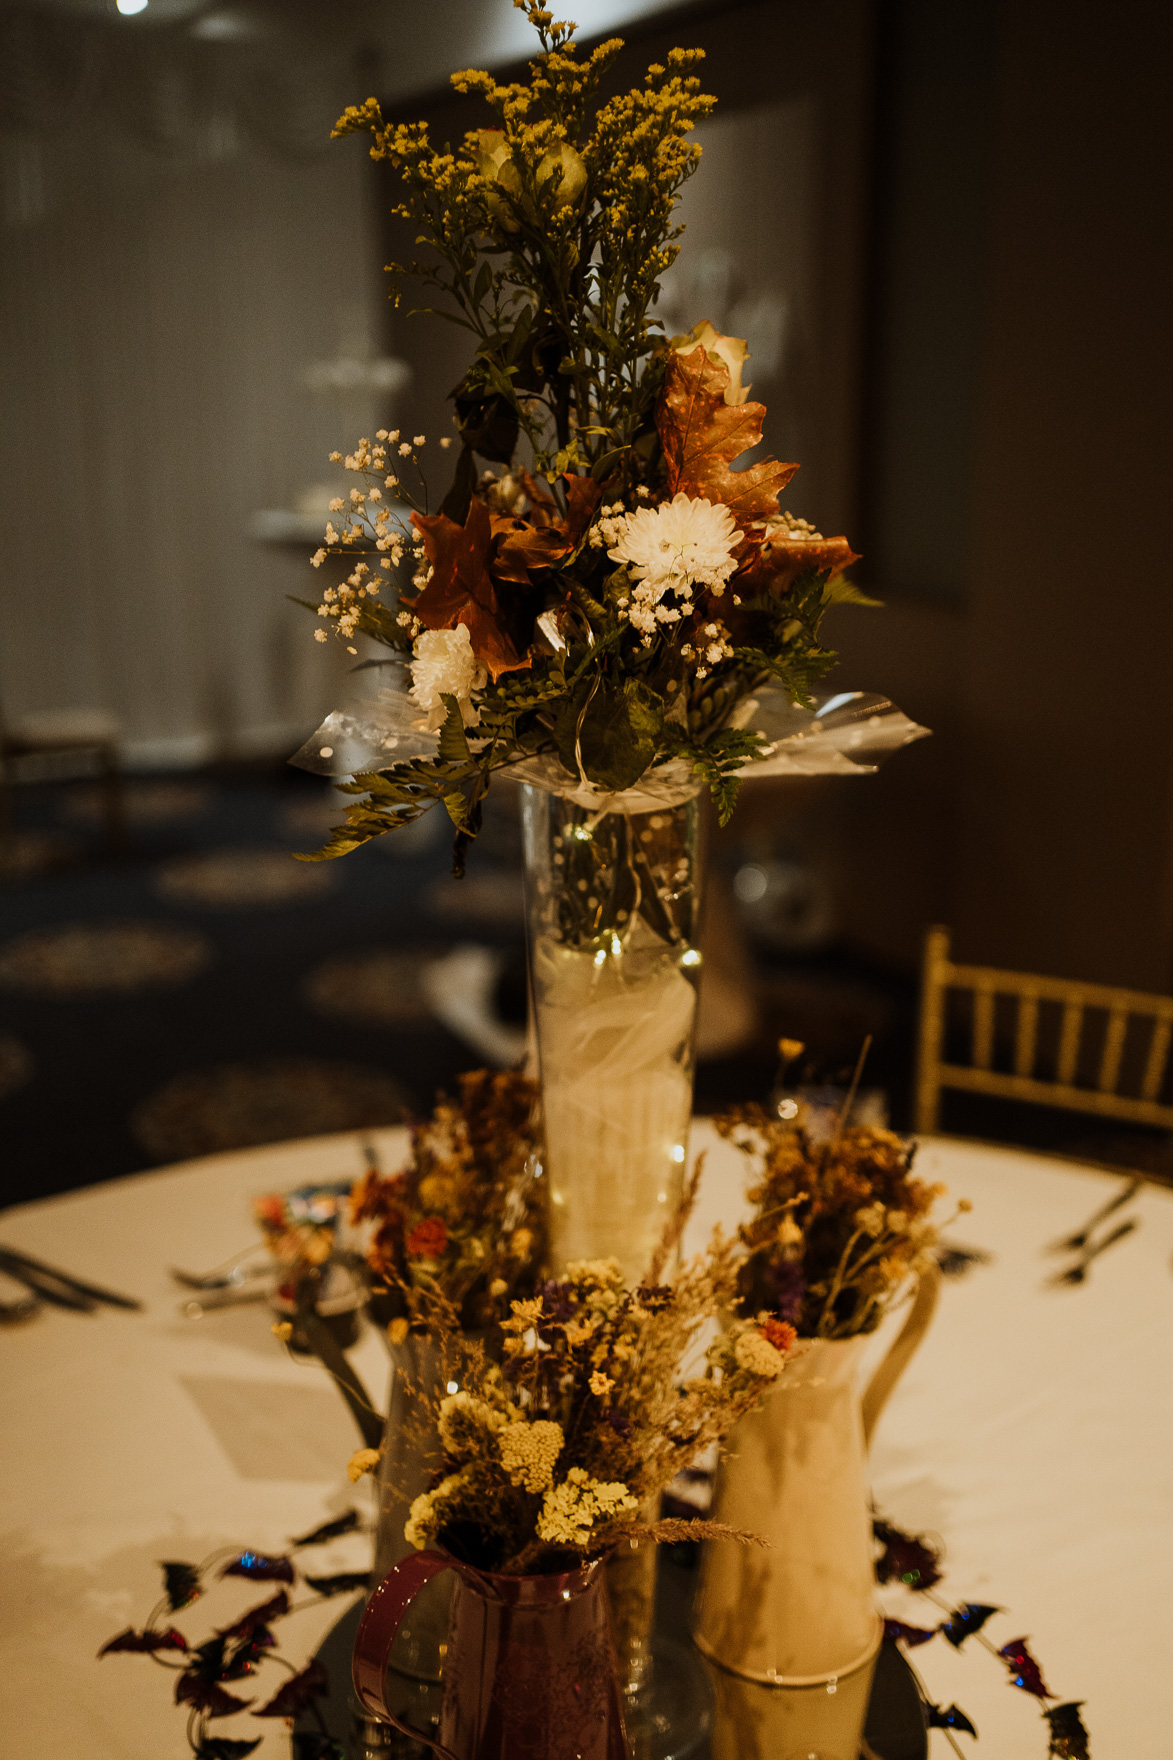 A vase of flowers on a table next to a christmas tree